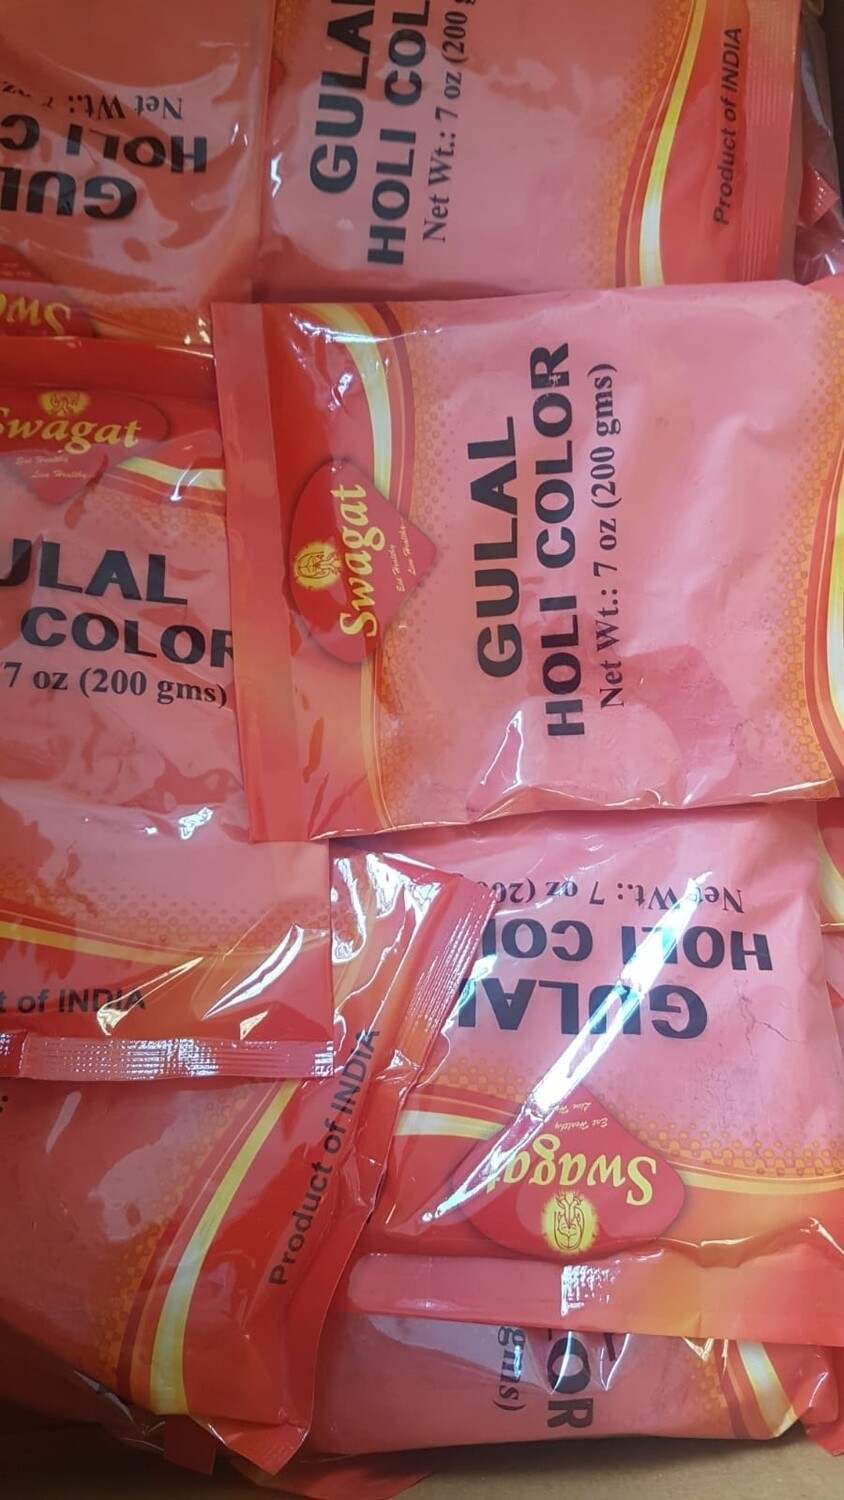 SWAGAT HOLI COLOR GULAL 200 GM